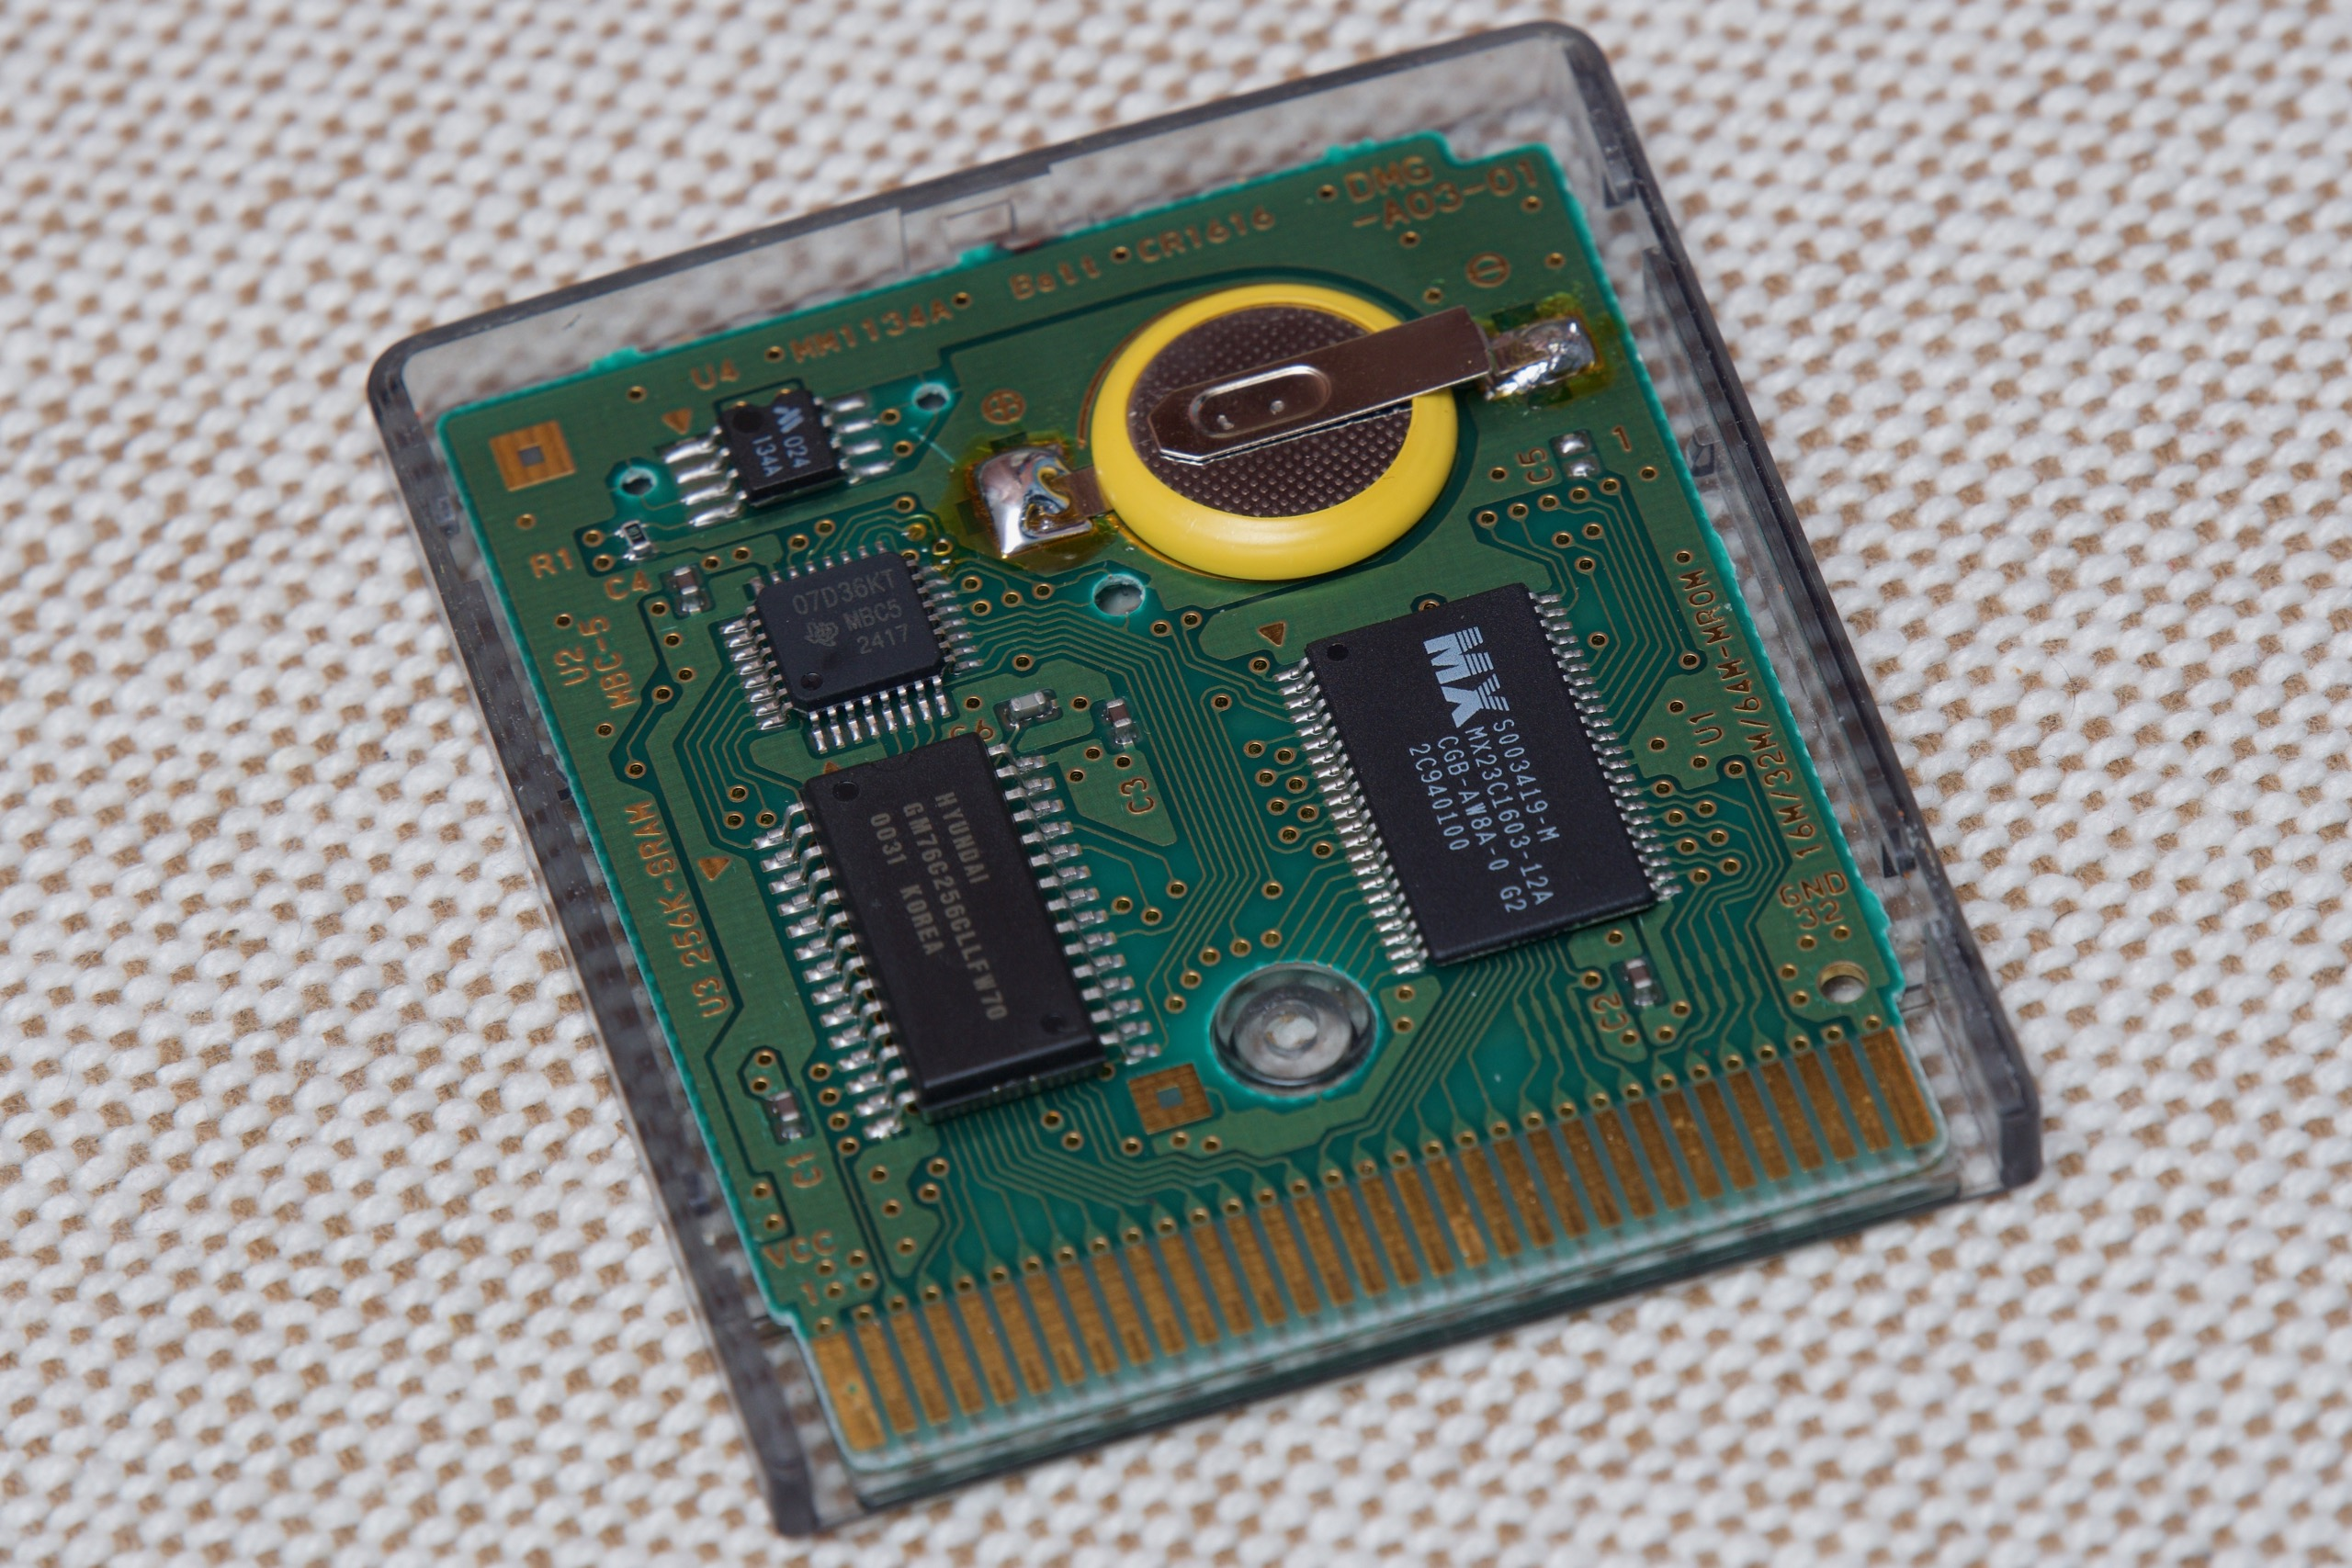 Sellers on eBay and Amazon offer batteries with pre-attached solder tabs specifically for old Game Boy cartridges. Even a novice solder-er should be able to swap them out without too much trouble.